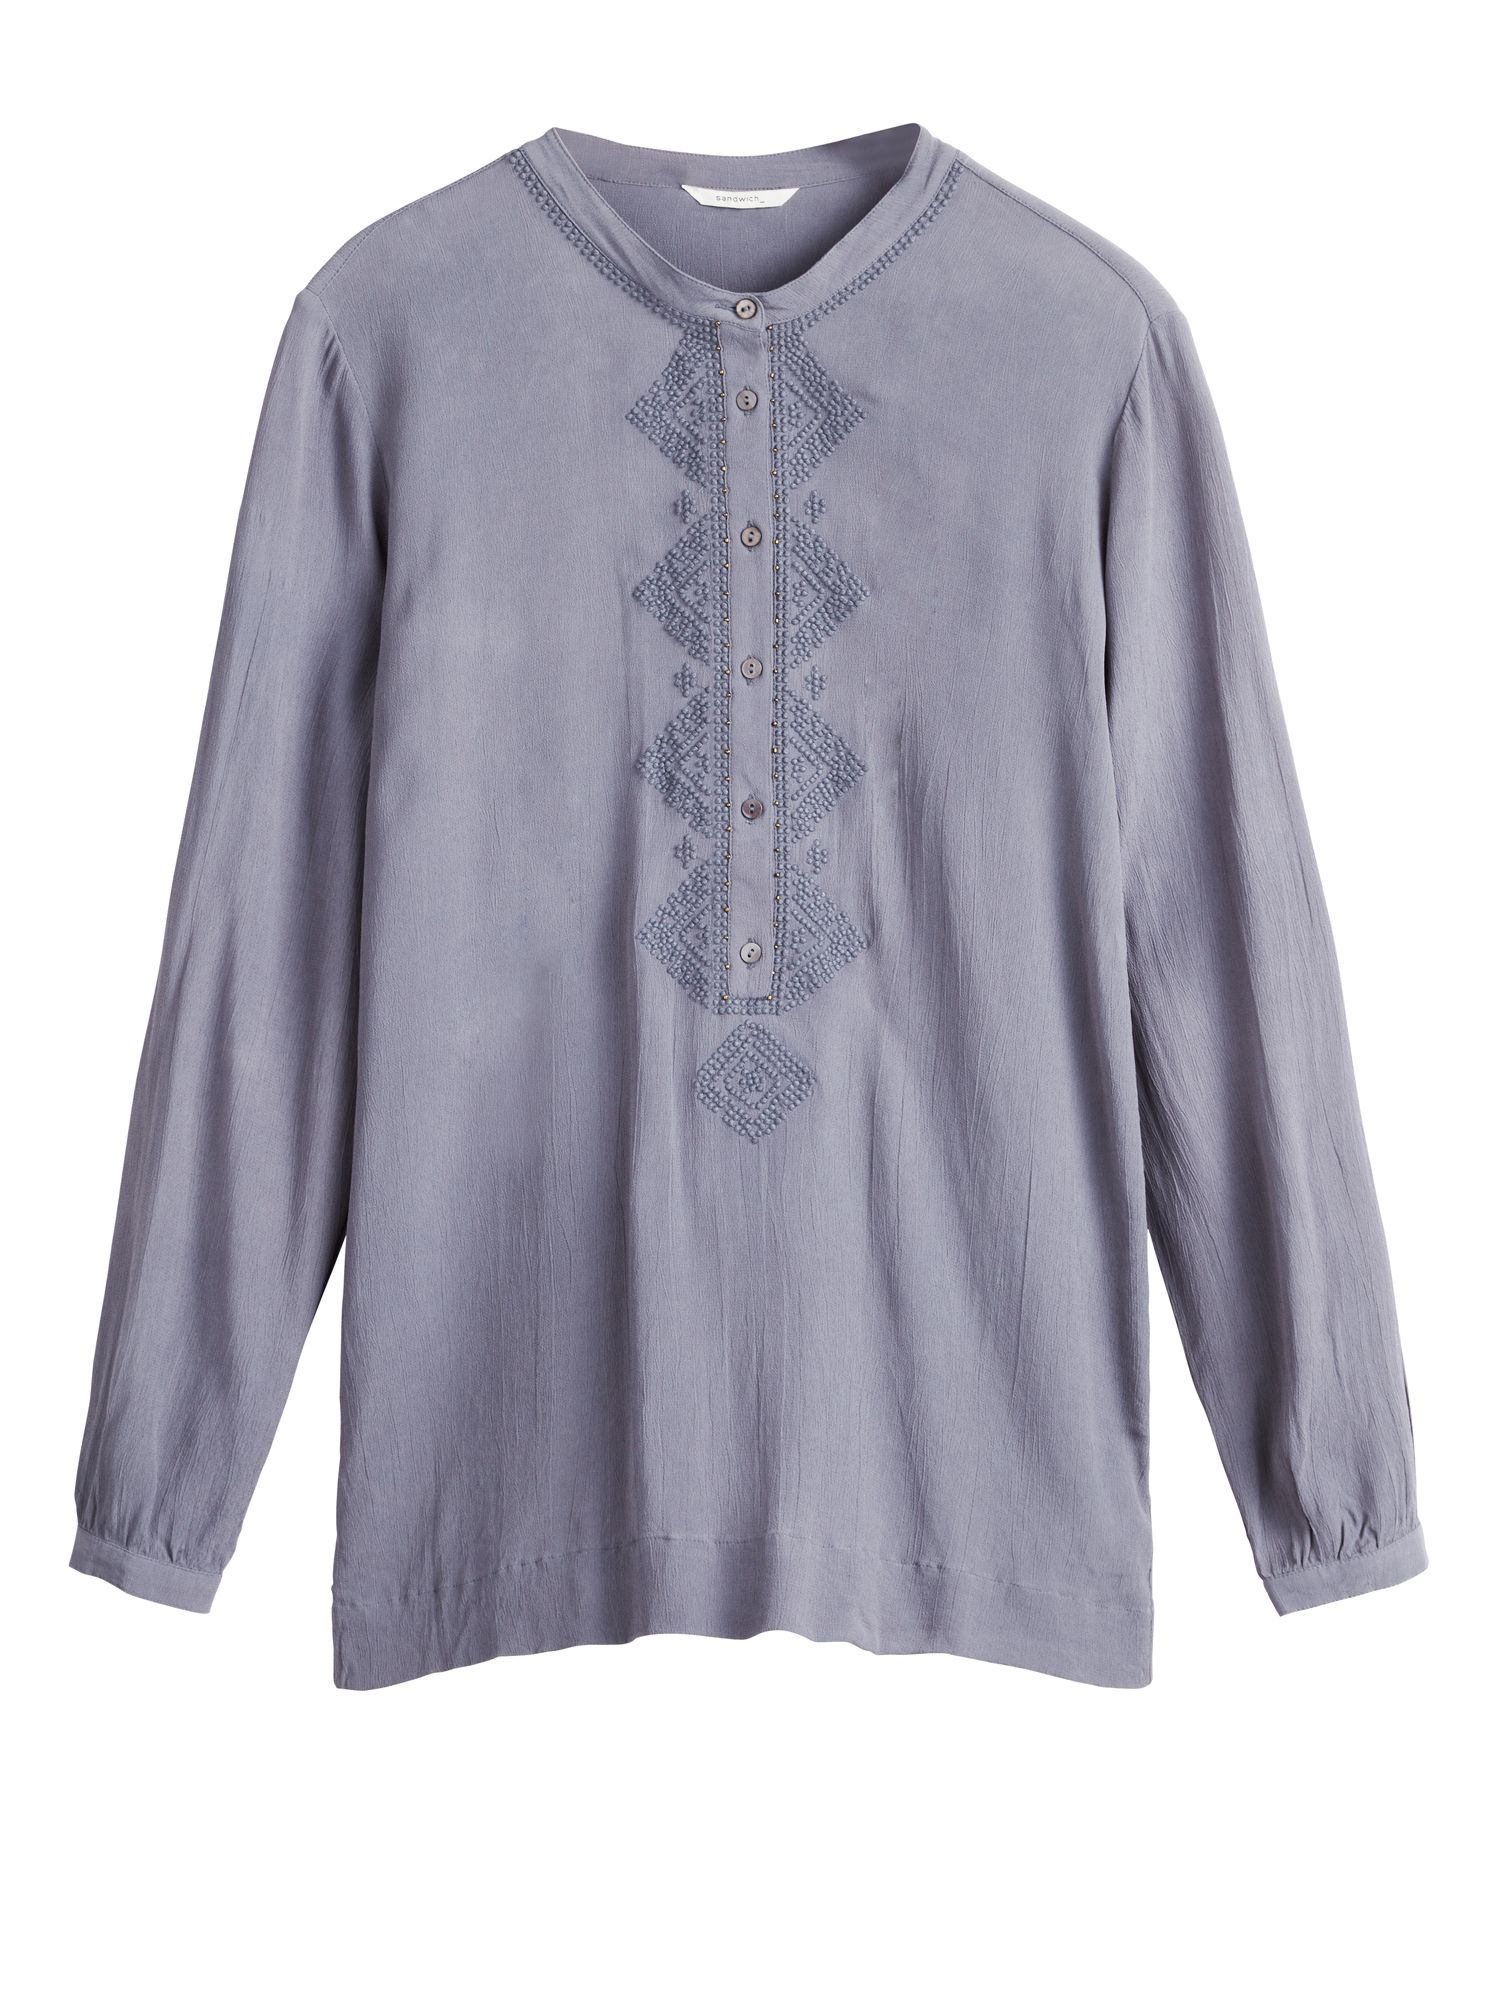 Sandwich Embroidered Blouse, Grey